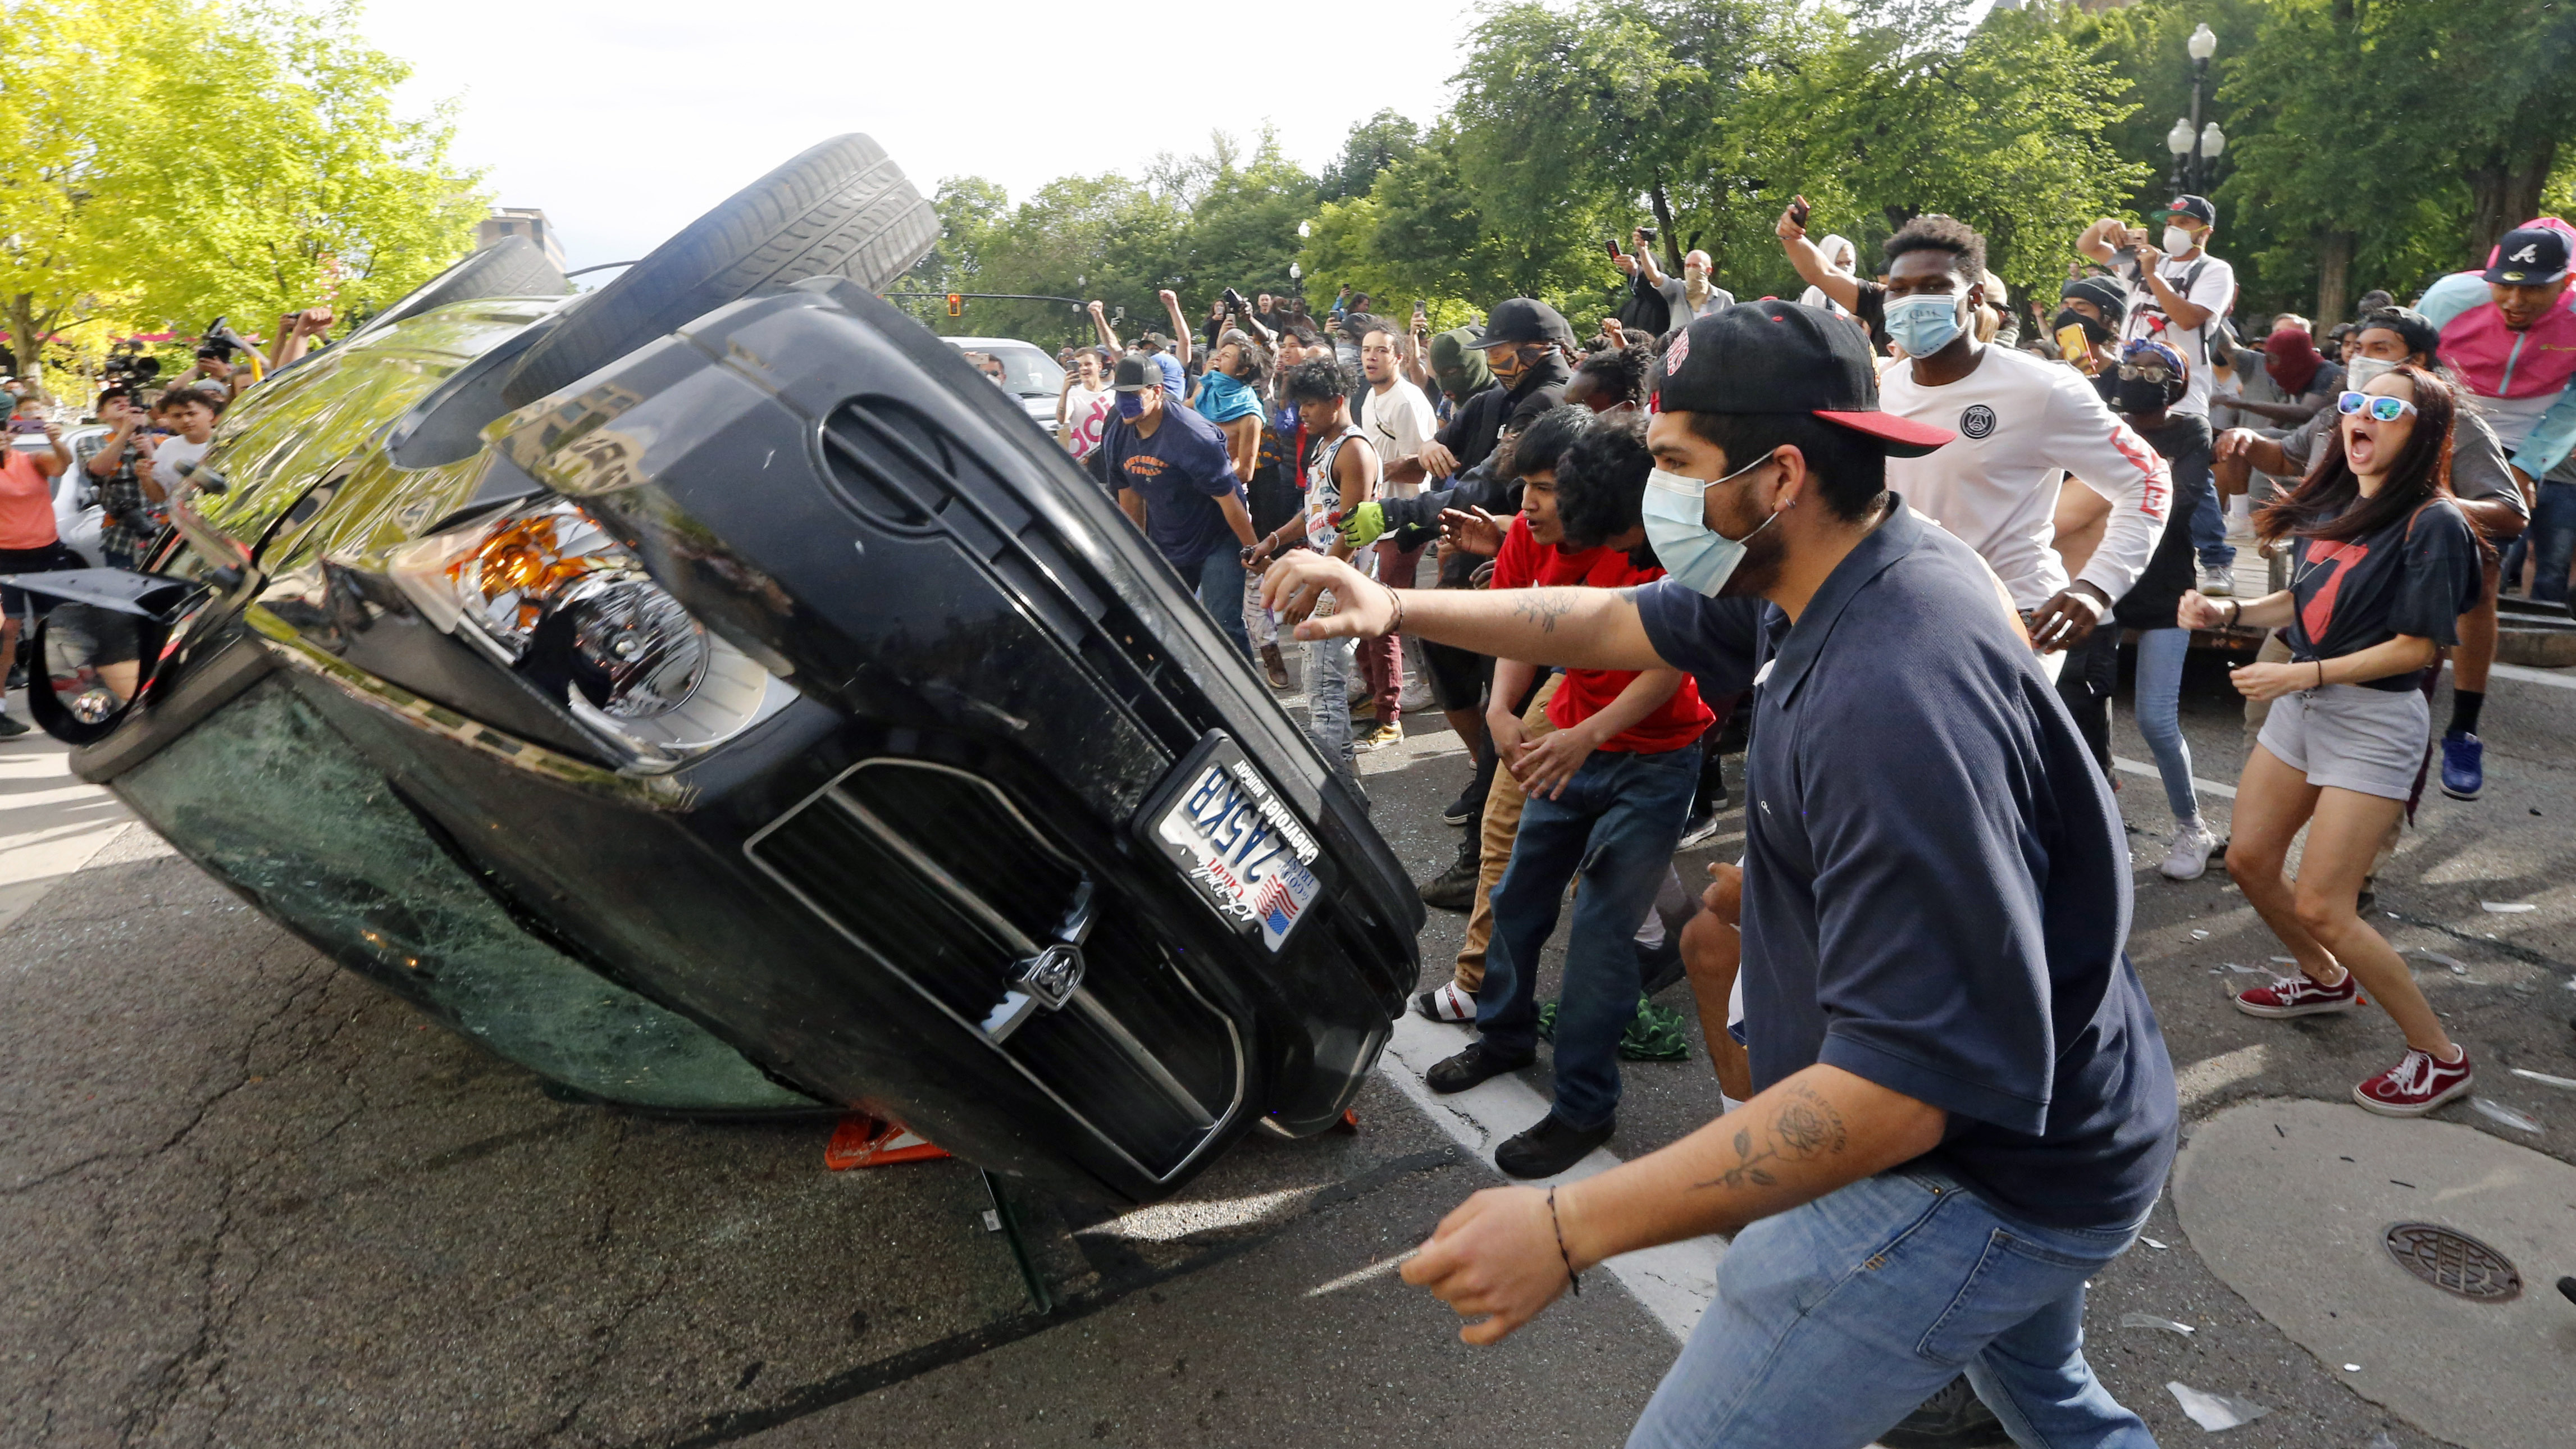 Protestors flip car belonging to man who threatened them with bow and arrow